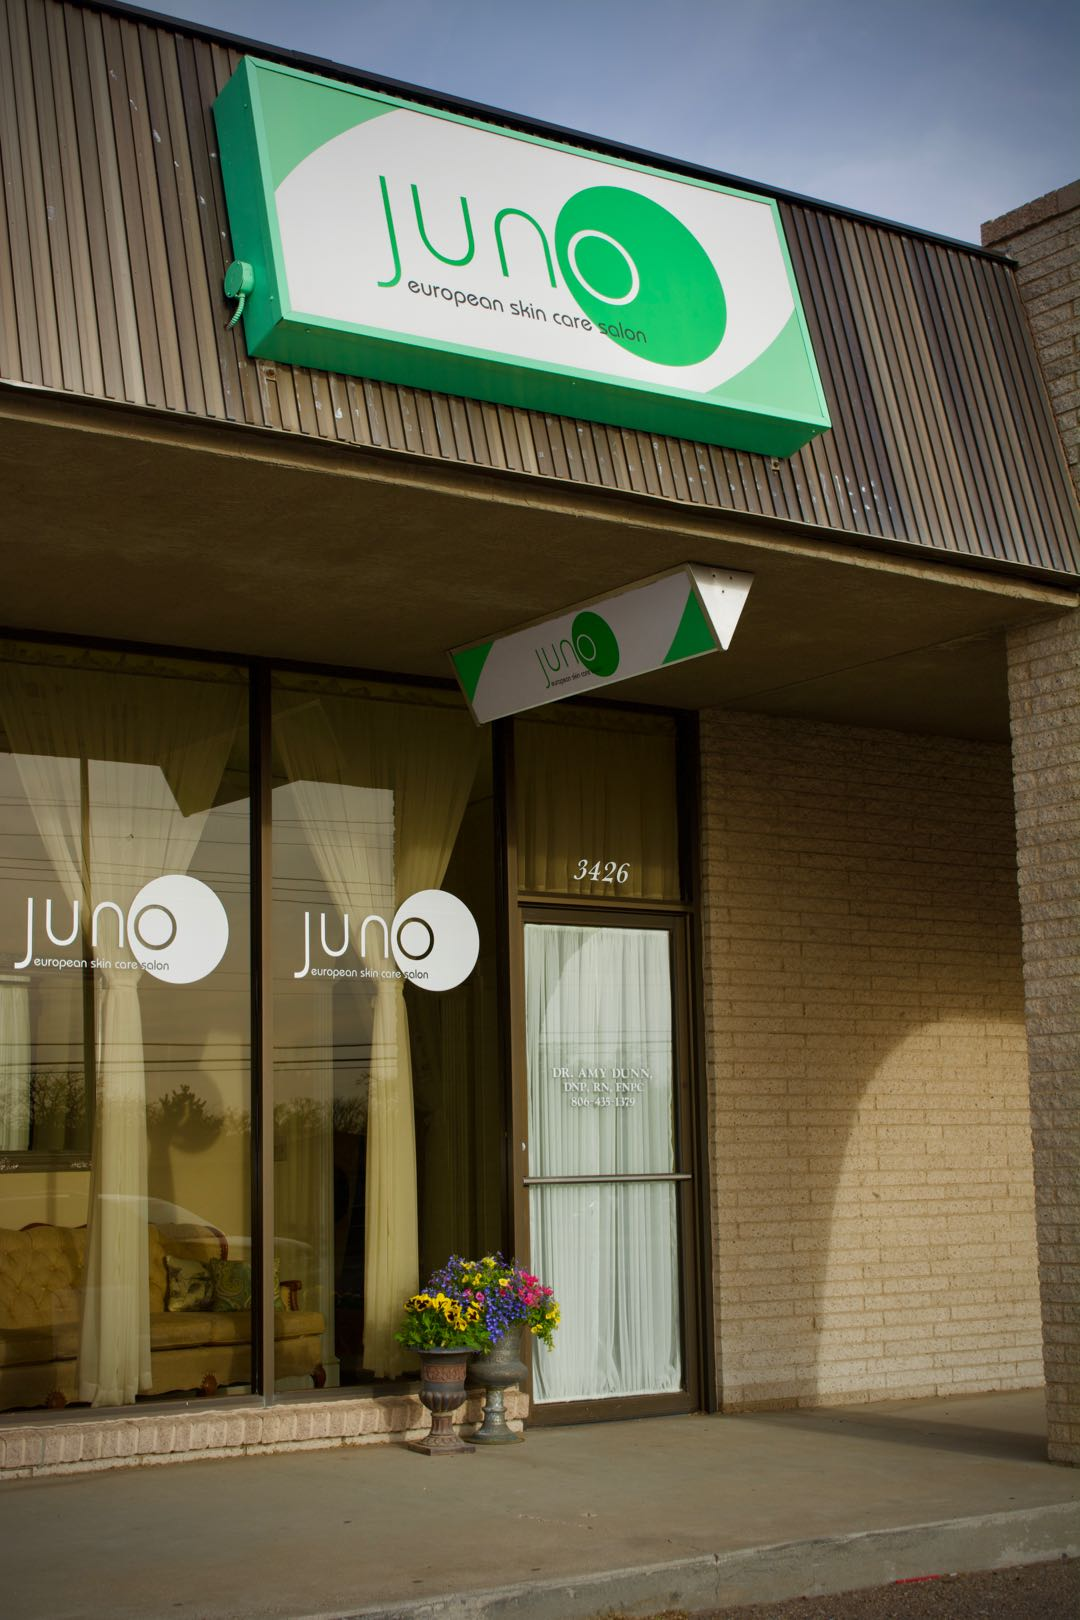 Juno – A European Skin Care Salon Store Front